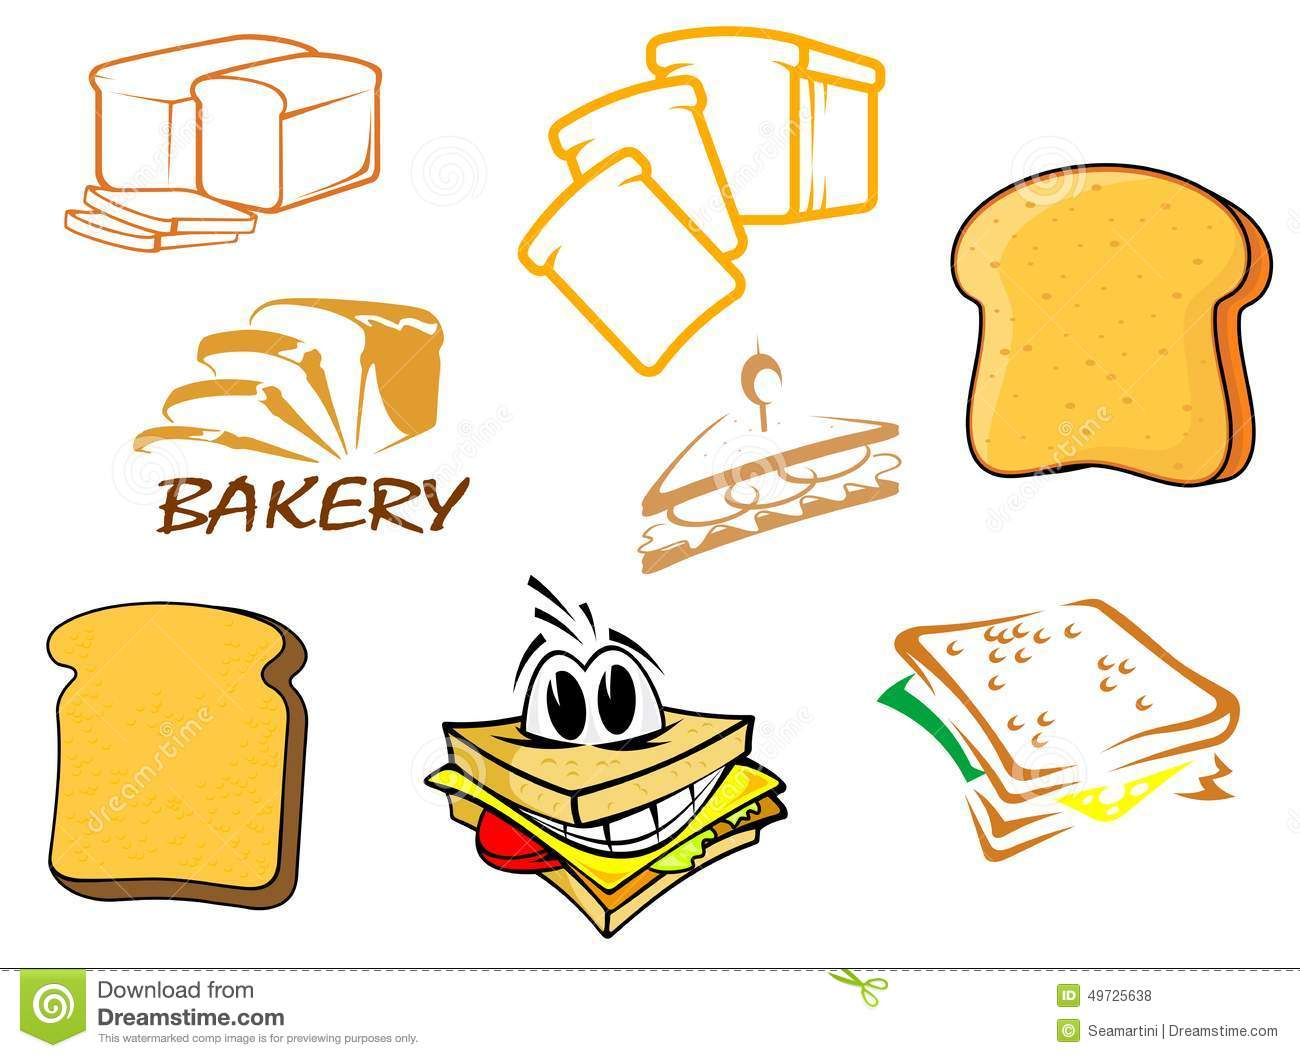 Toasts and bread icons stock vector. Illustration of healthy - 49725638